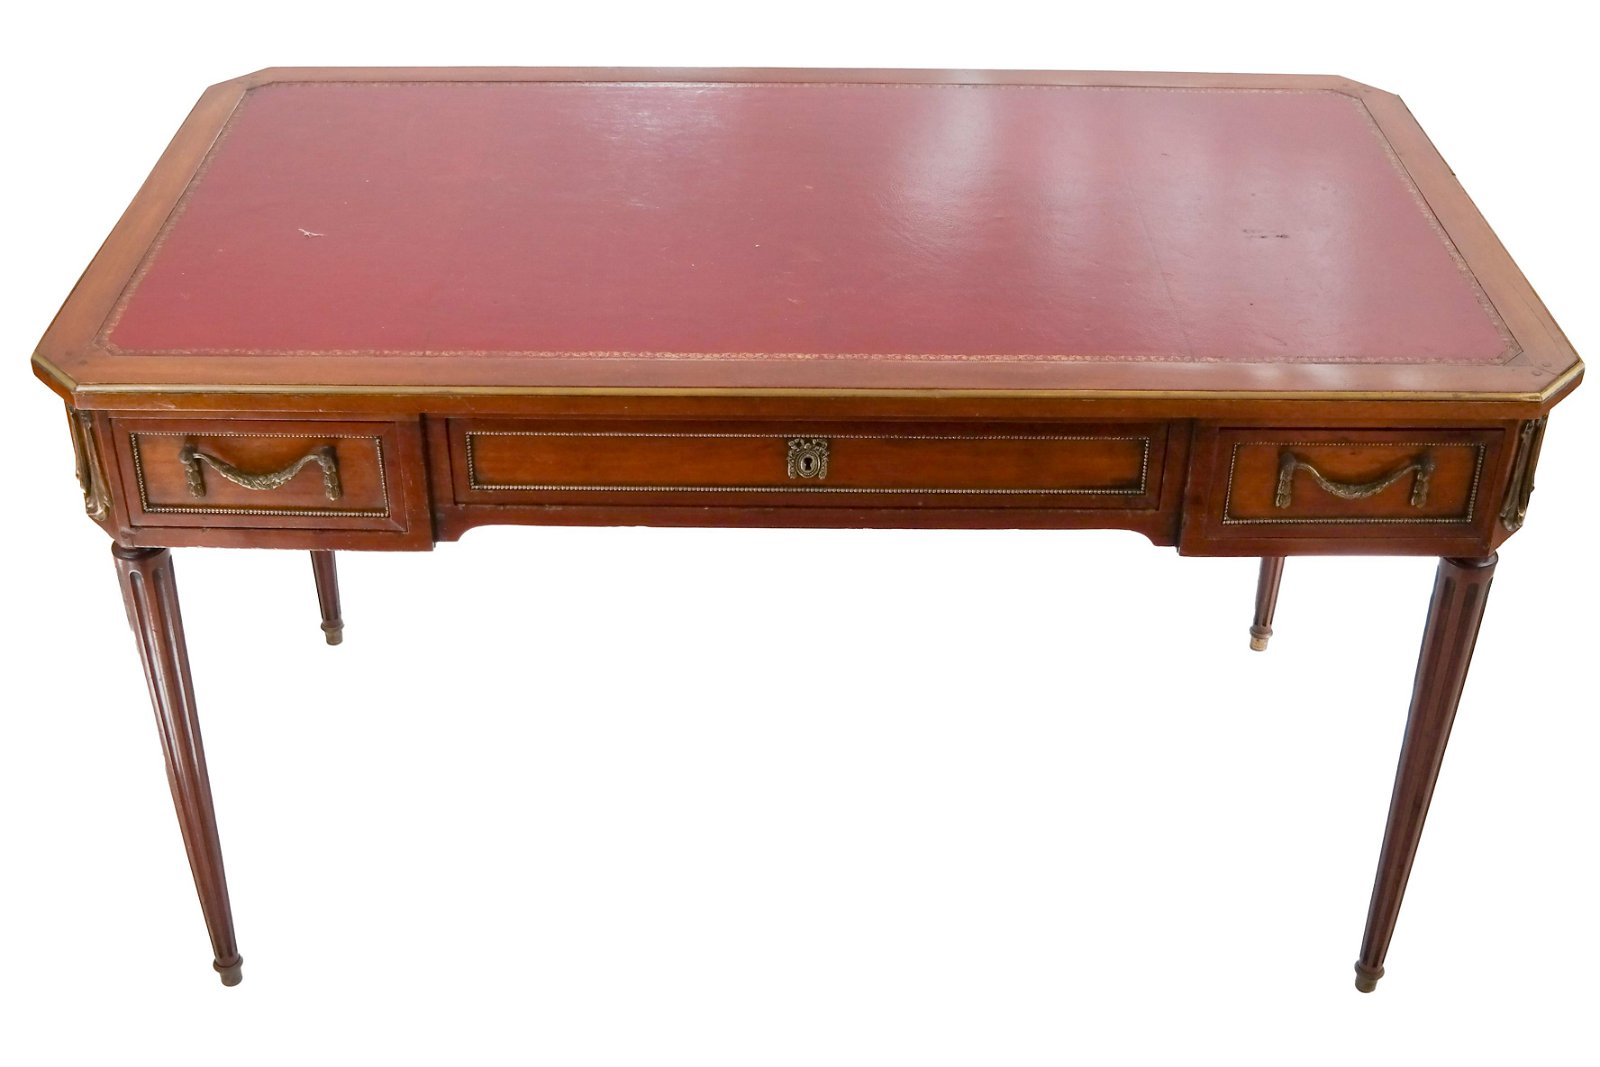 French Louis XVI-Style Mahogany Bureau Plat Desk